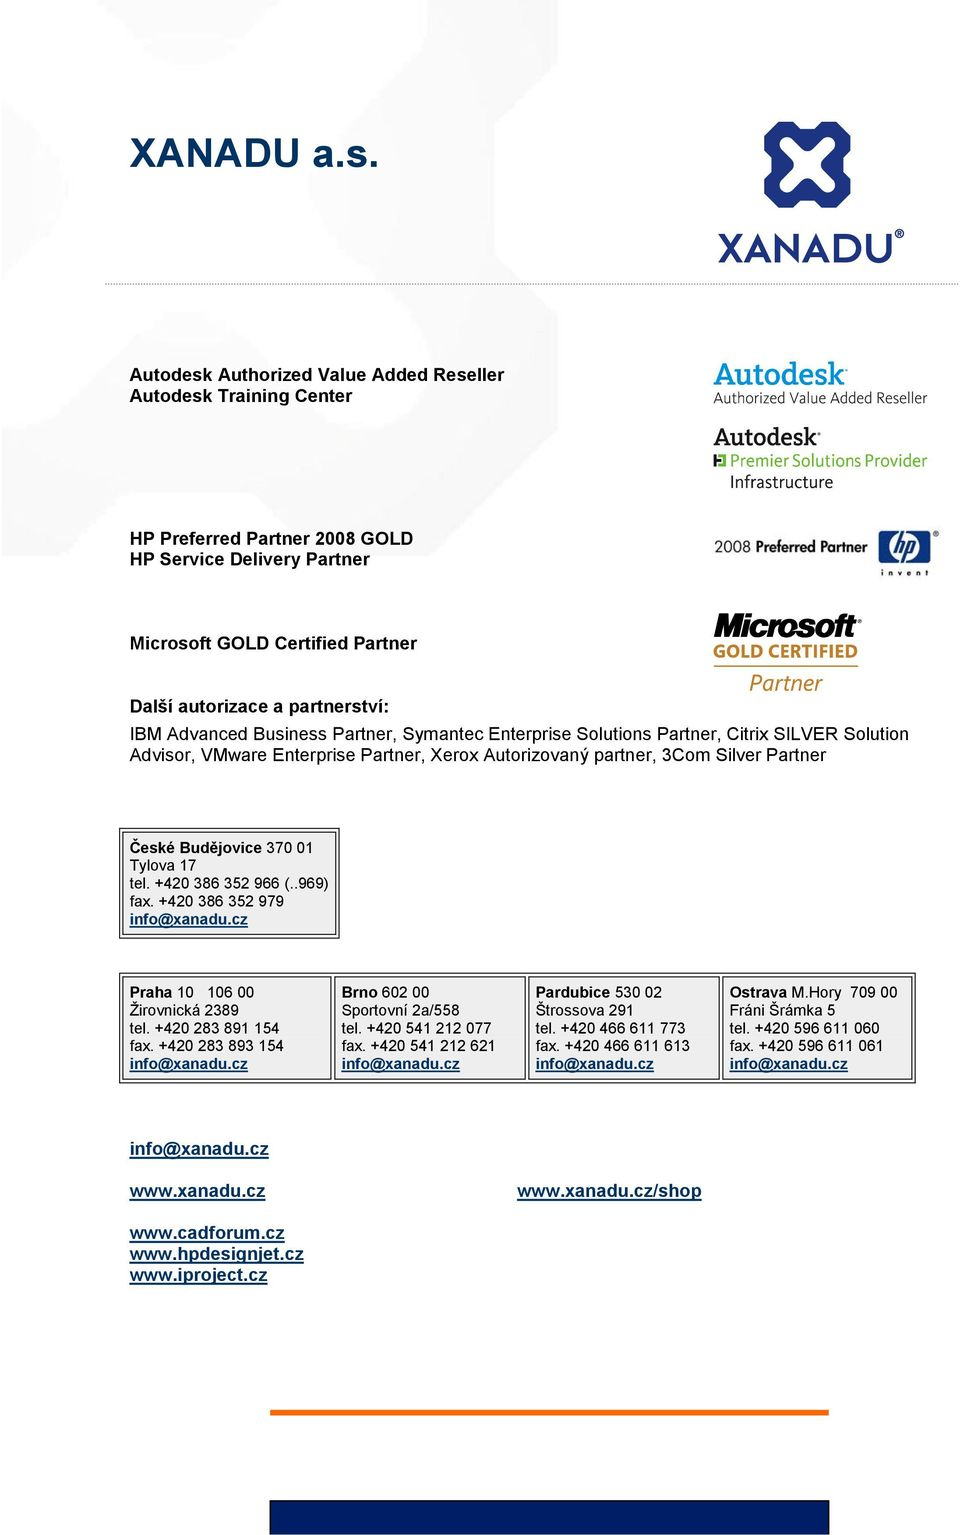 Advanced Business Partner, Symantec Enterprise Solutions Partner, Citrix SILVER Solution Advisor, VMware Enterprise Partner, Xerox Autorizovaný partner, 3Com Silver Partner České Budějovice 370 01